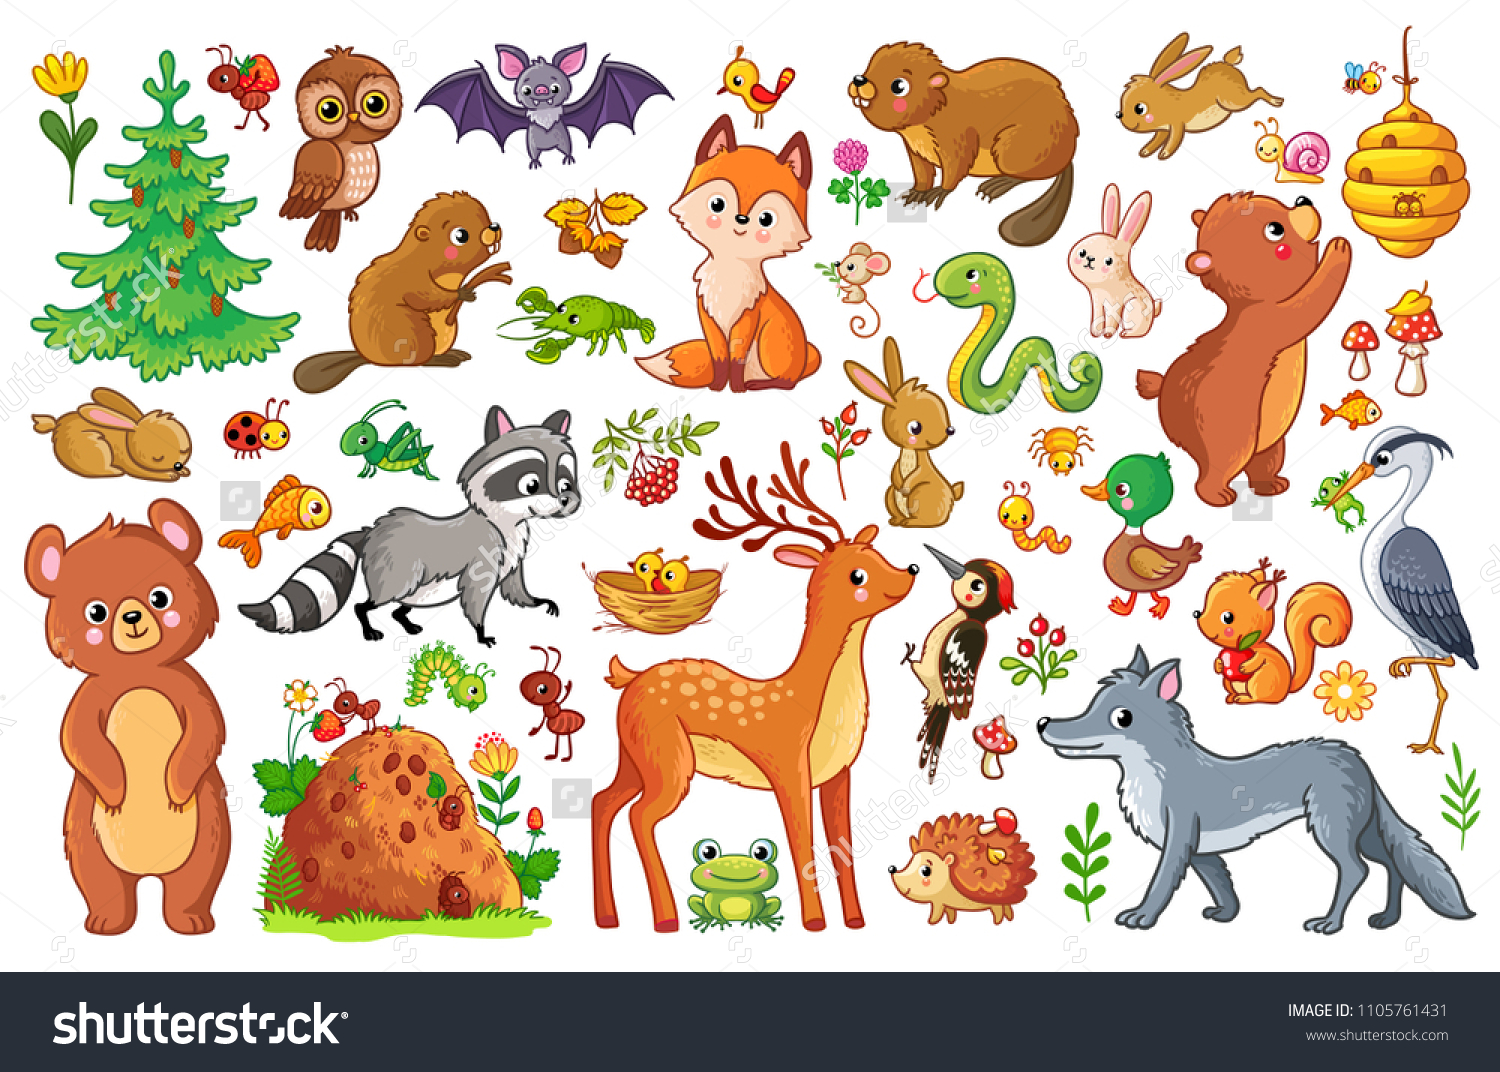 Vector set with animals and birds in a children's style. Collection of insects and mammals in cartoon style. #1105761431